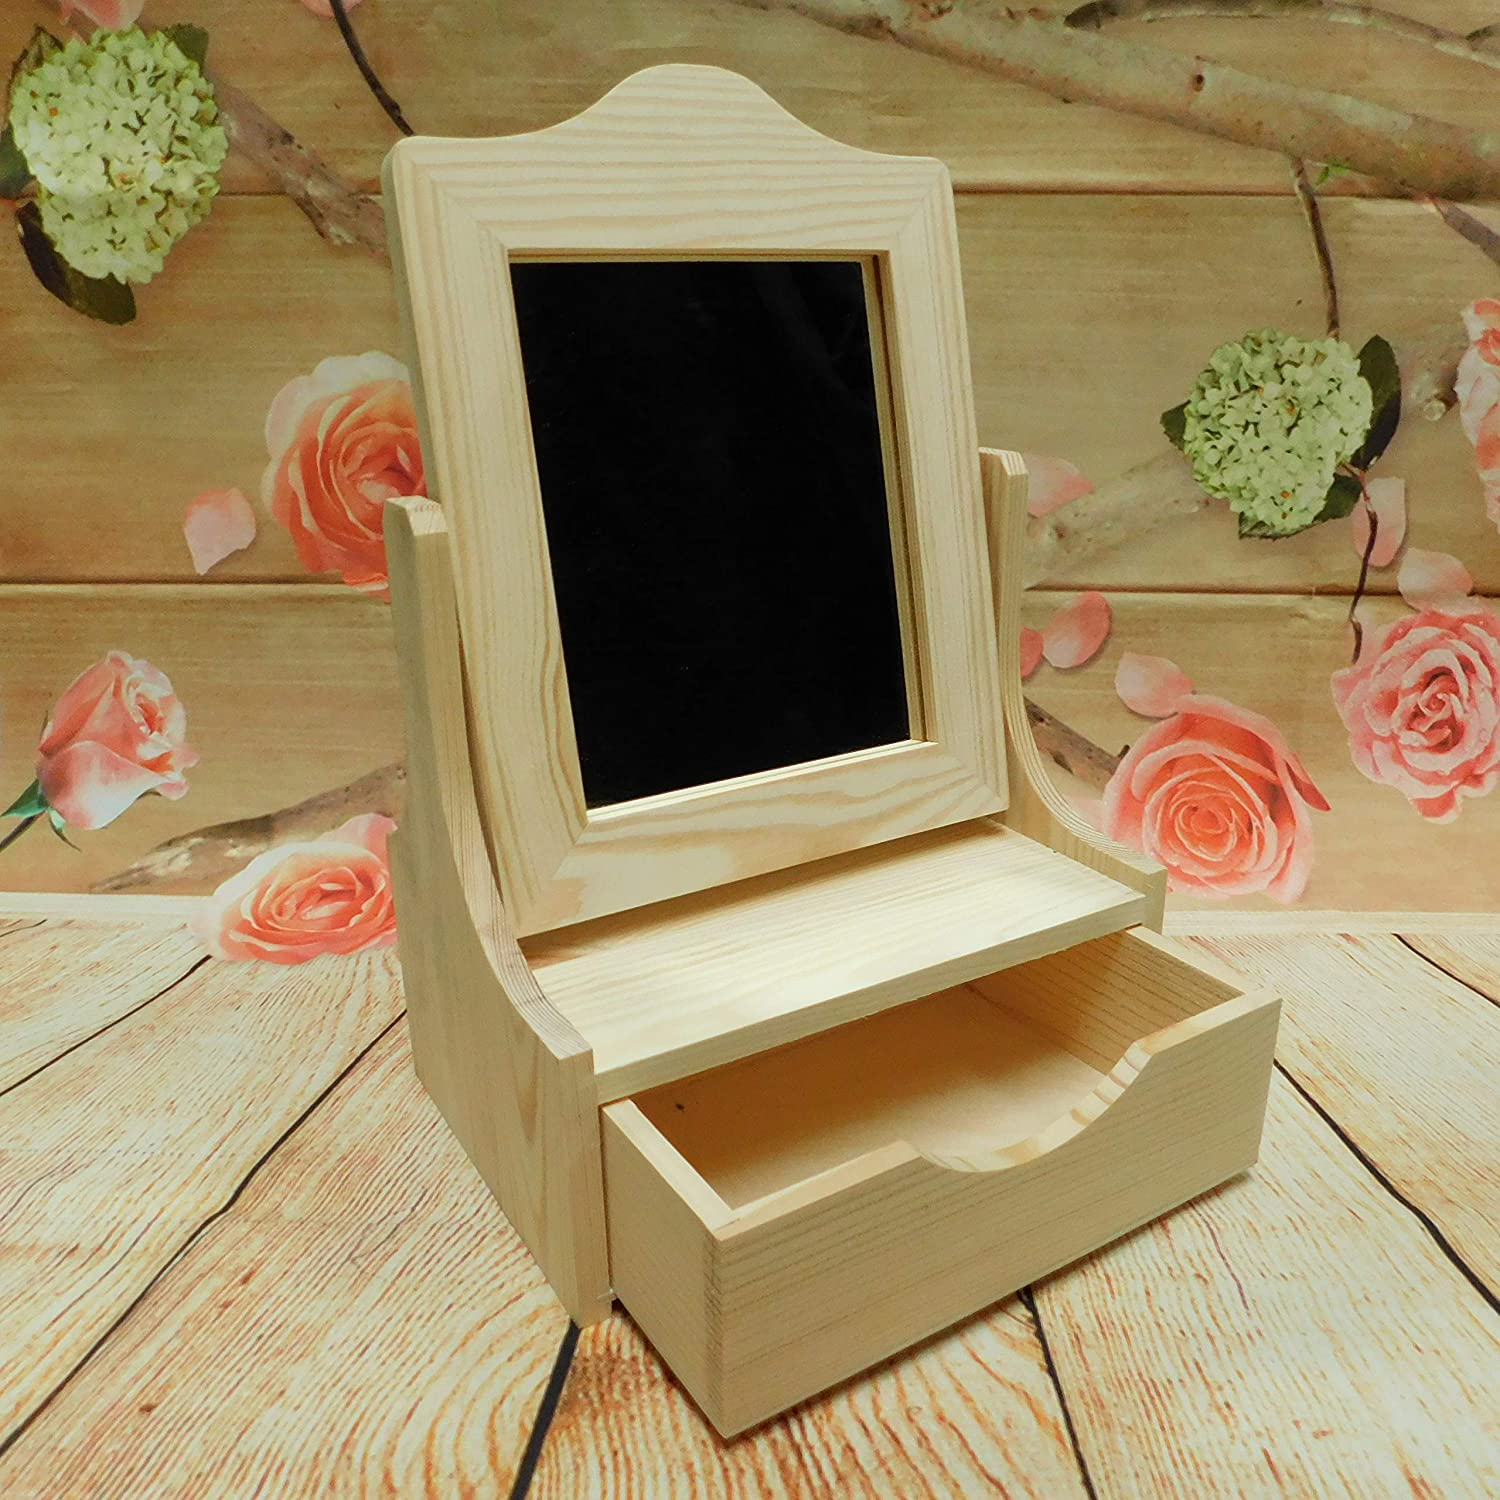 HomeDecoArt New Plain Large Wooden Jewellery/Cosmetics Vanity with Mirror - Wooden dressing Table